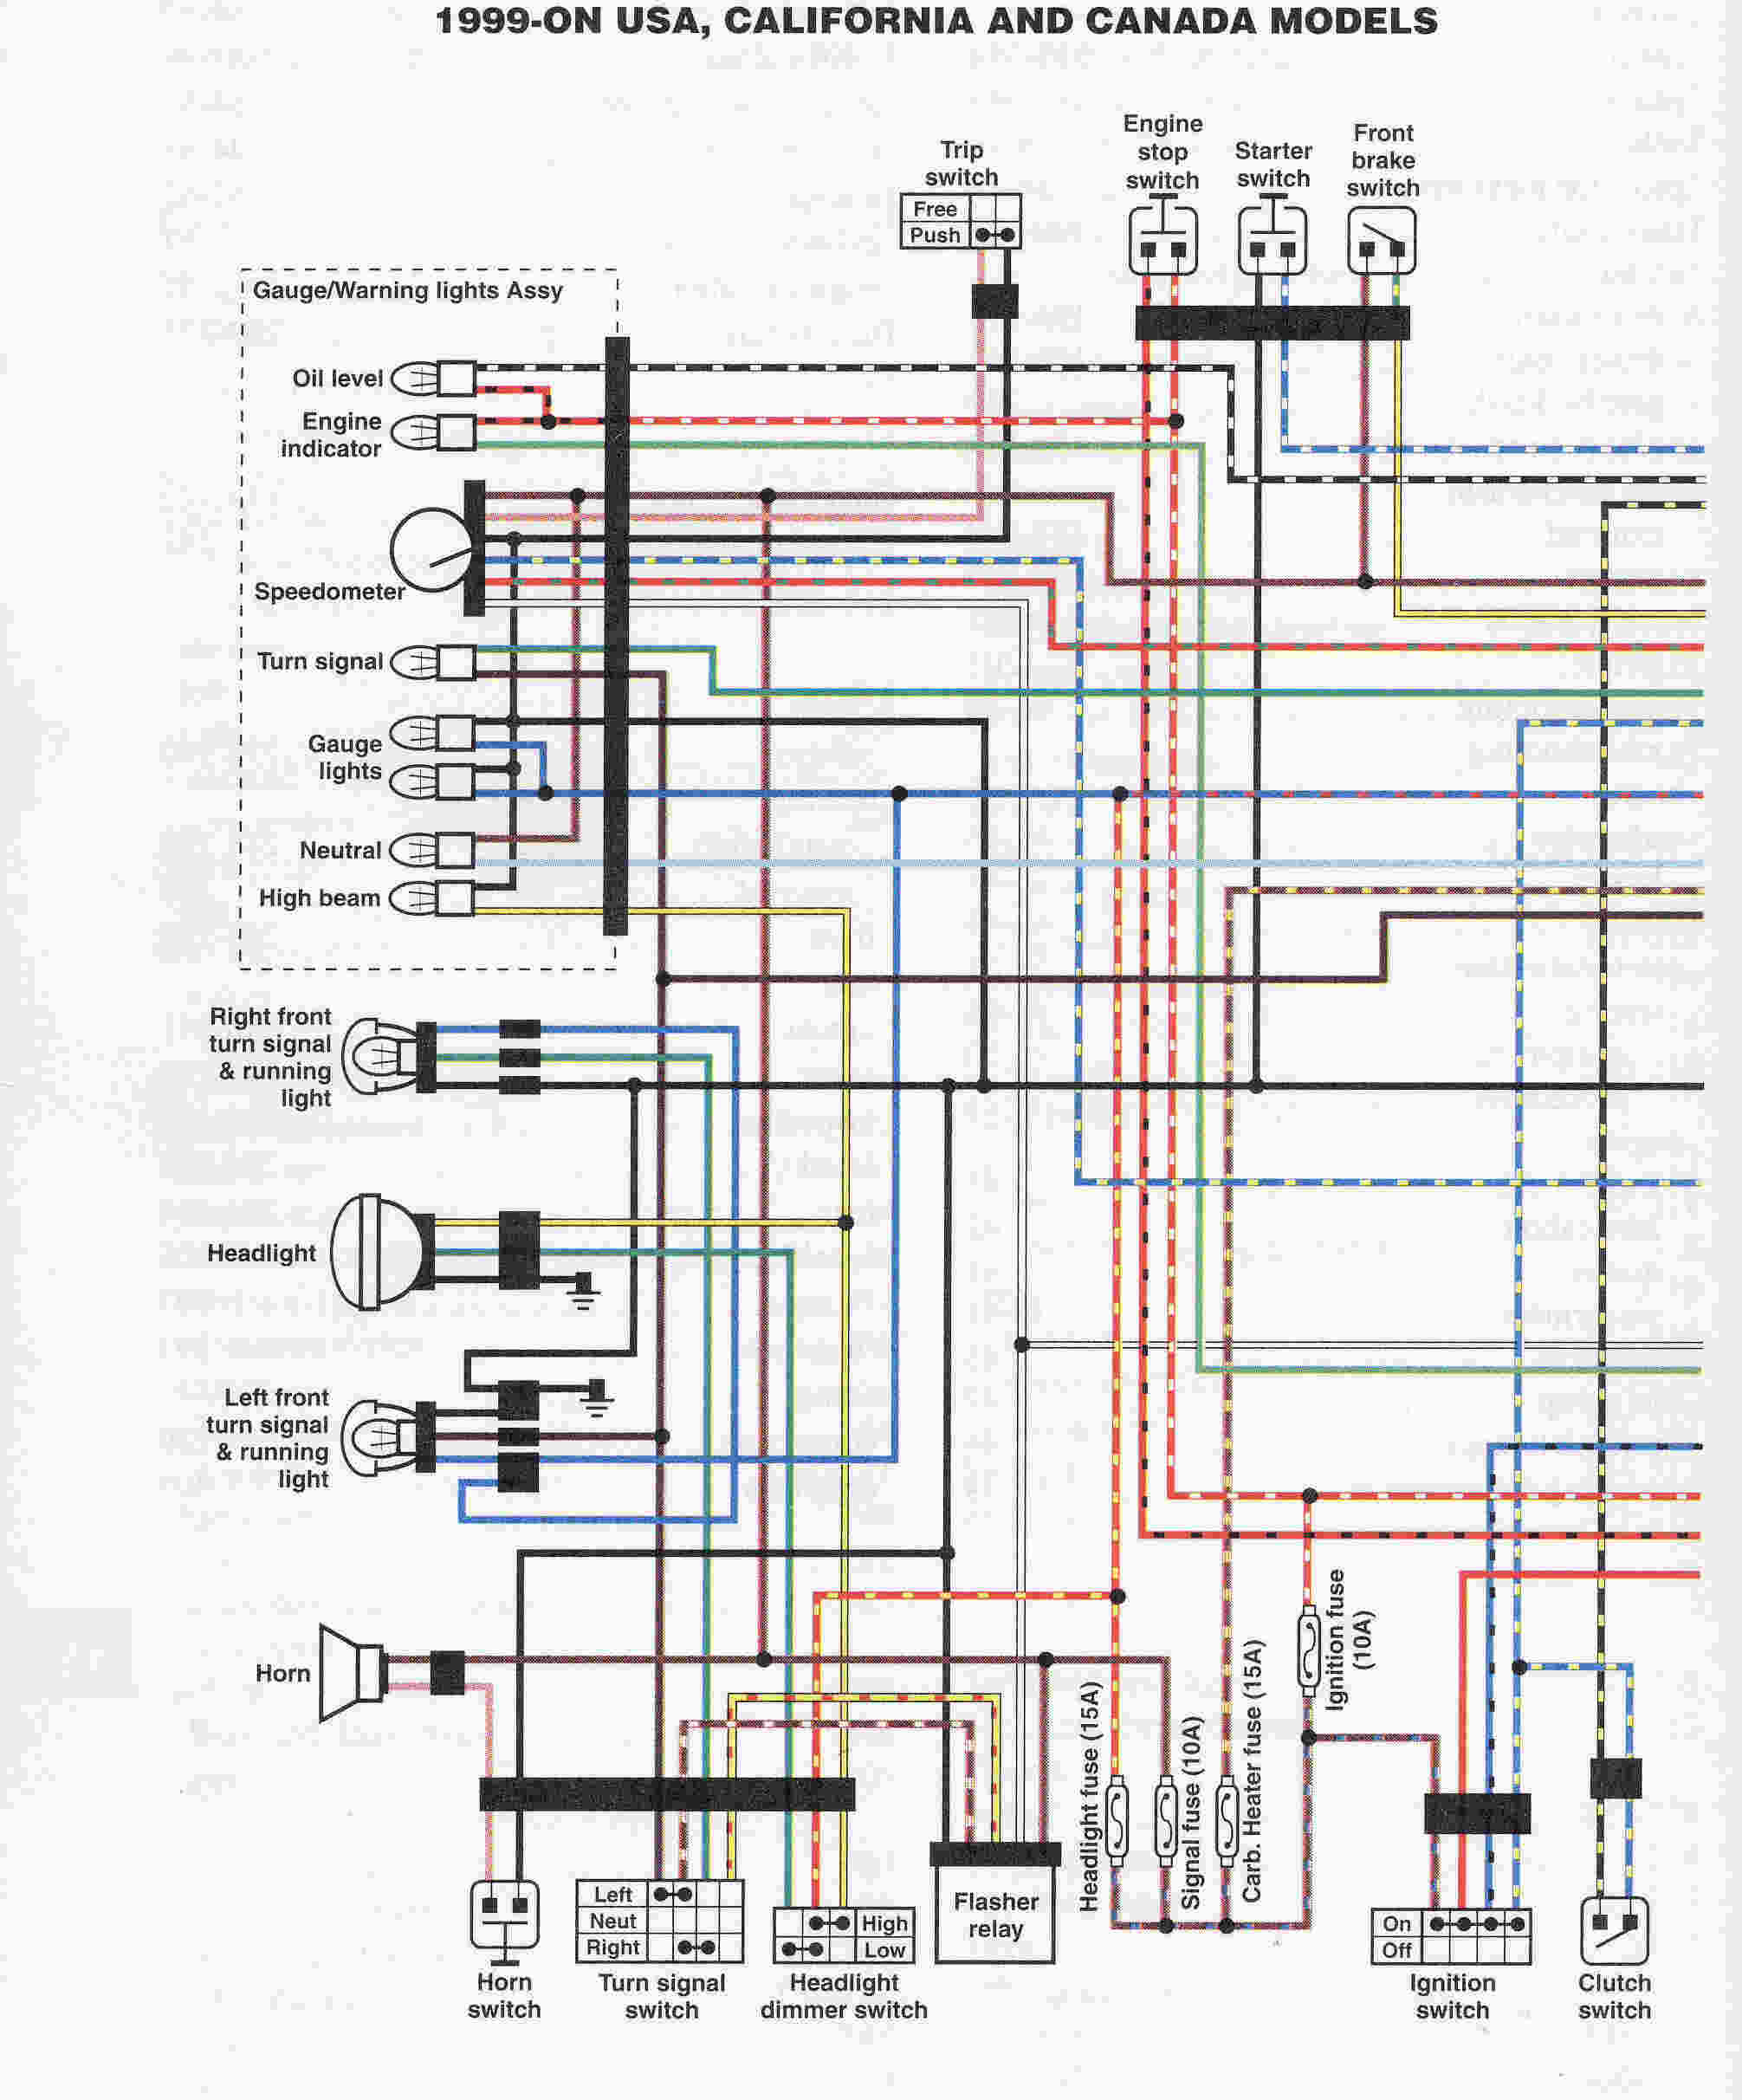 07 Yamaha R1 Wiring Diagram Great Design Of R6 Ecu 2006 Yzf Cheap 2007